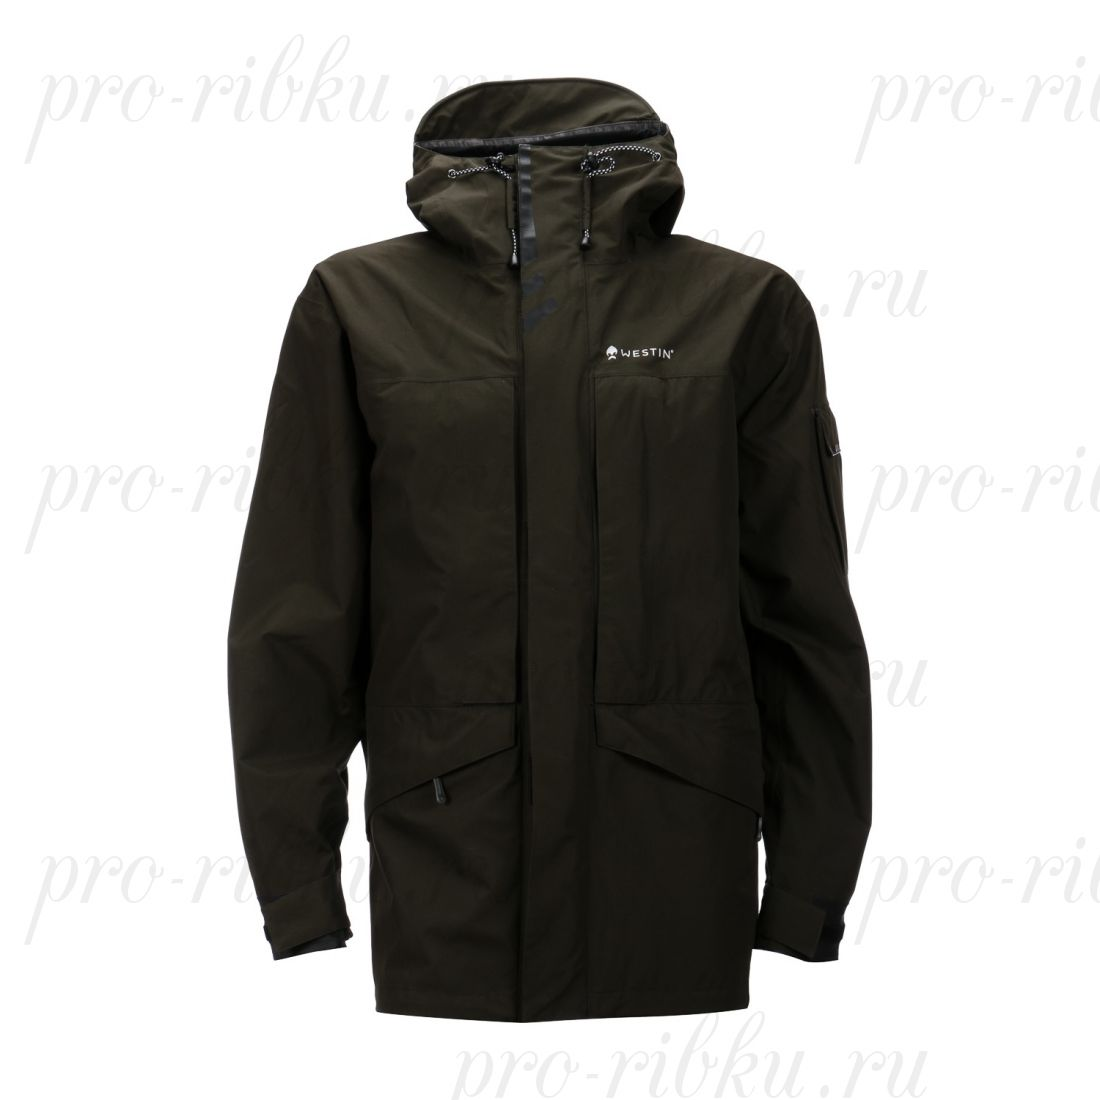 Куртка Westin W3-LAYER Jacket Rifle Green размер M